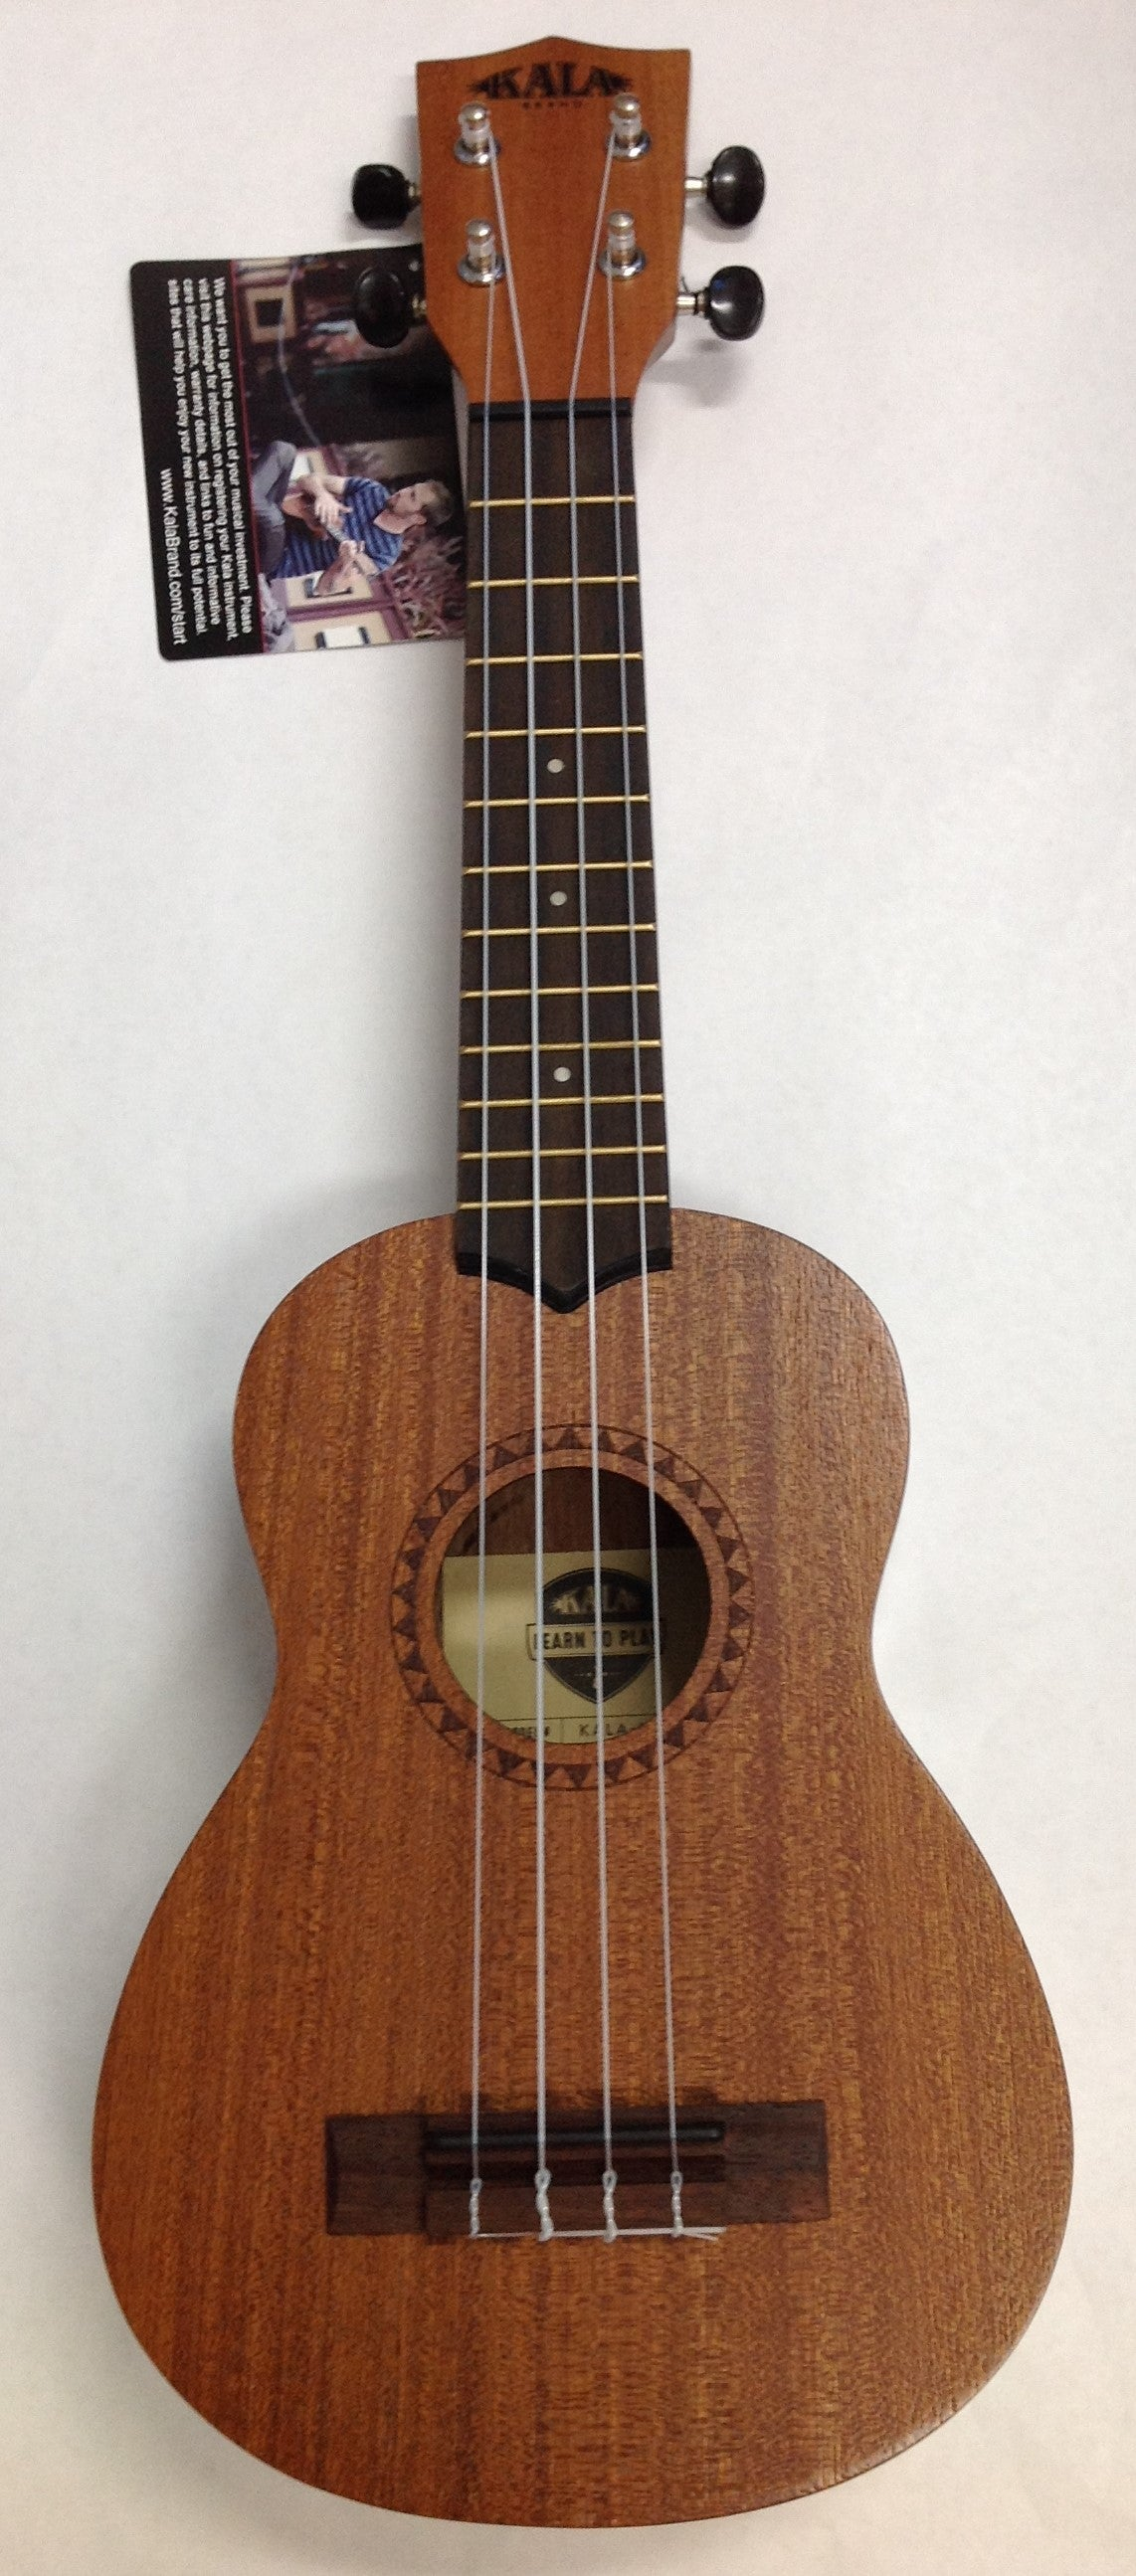 Kala learn to play starter Ukulele LTP-S